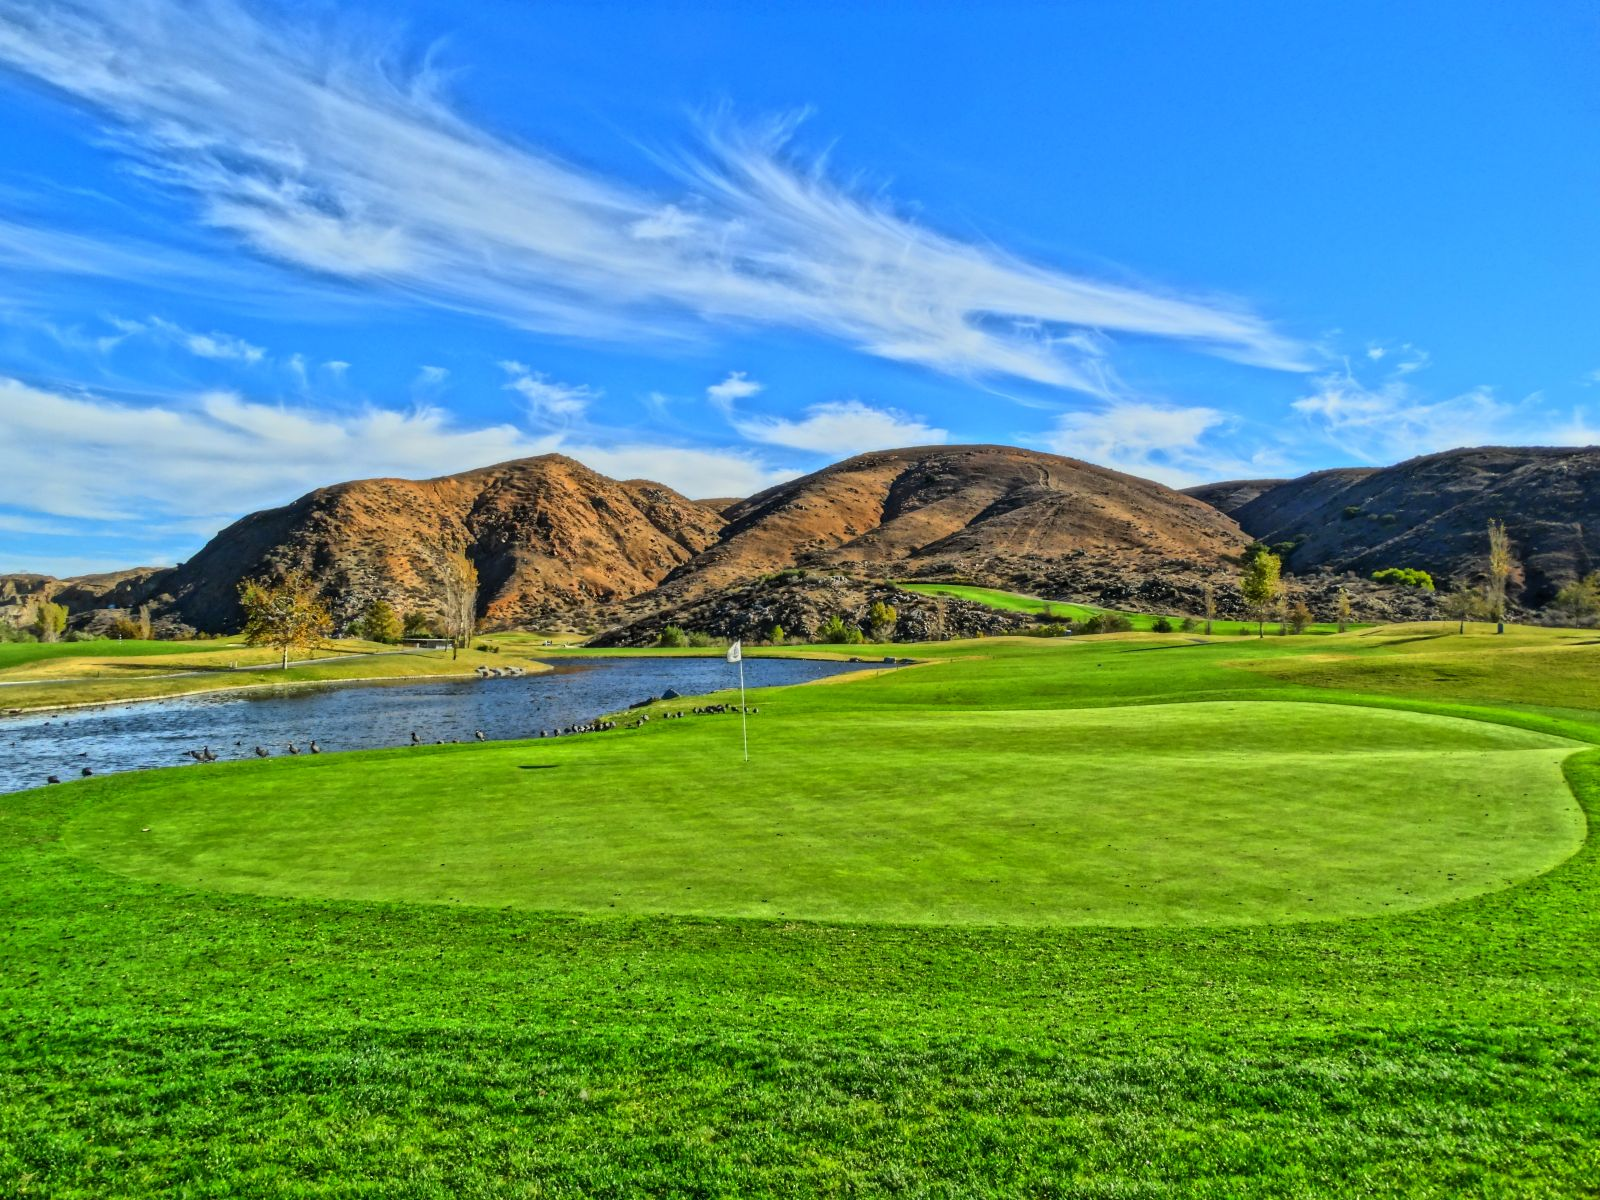 Enjoy the Inland Empire scenery with a round at Dos Lagos Golf Course